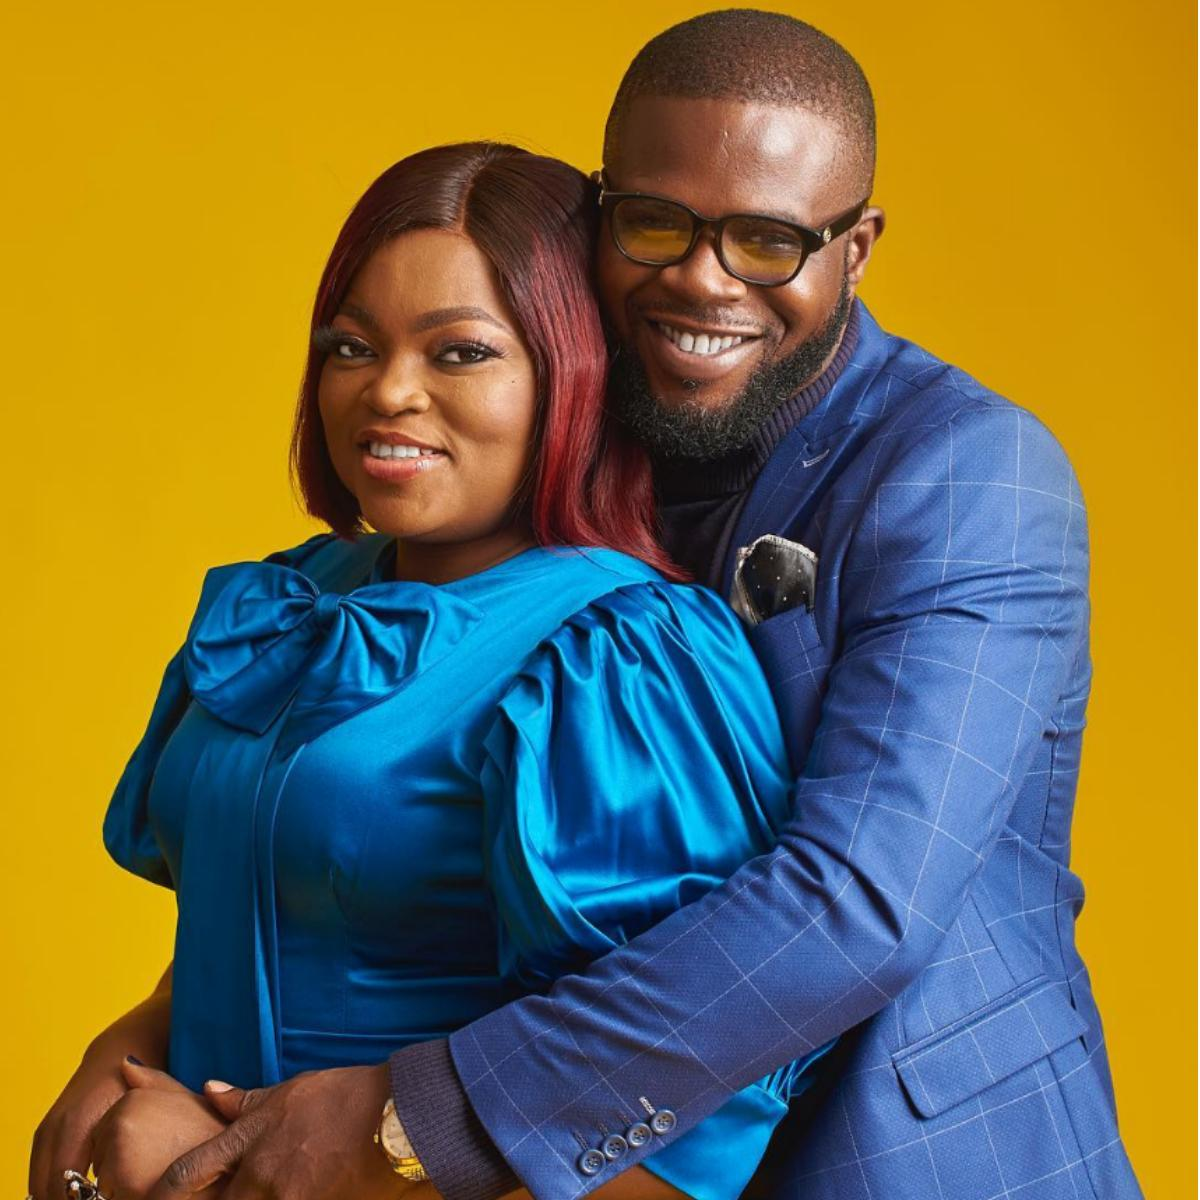 Nigerian Celebrity News: Funke Akindele's Husband JJC